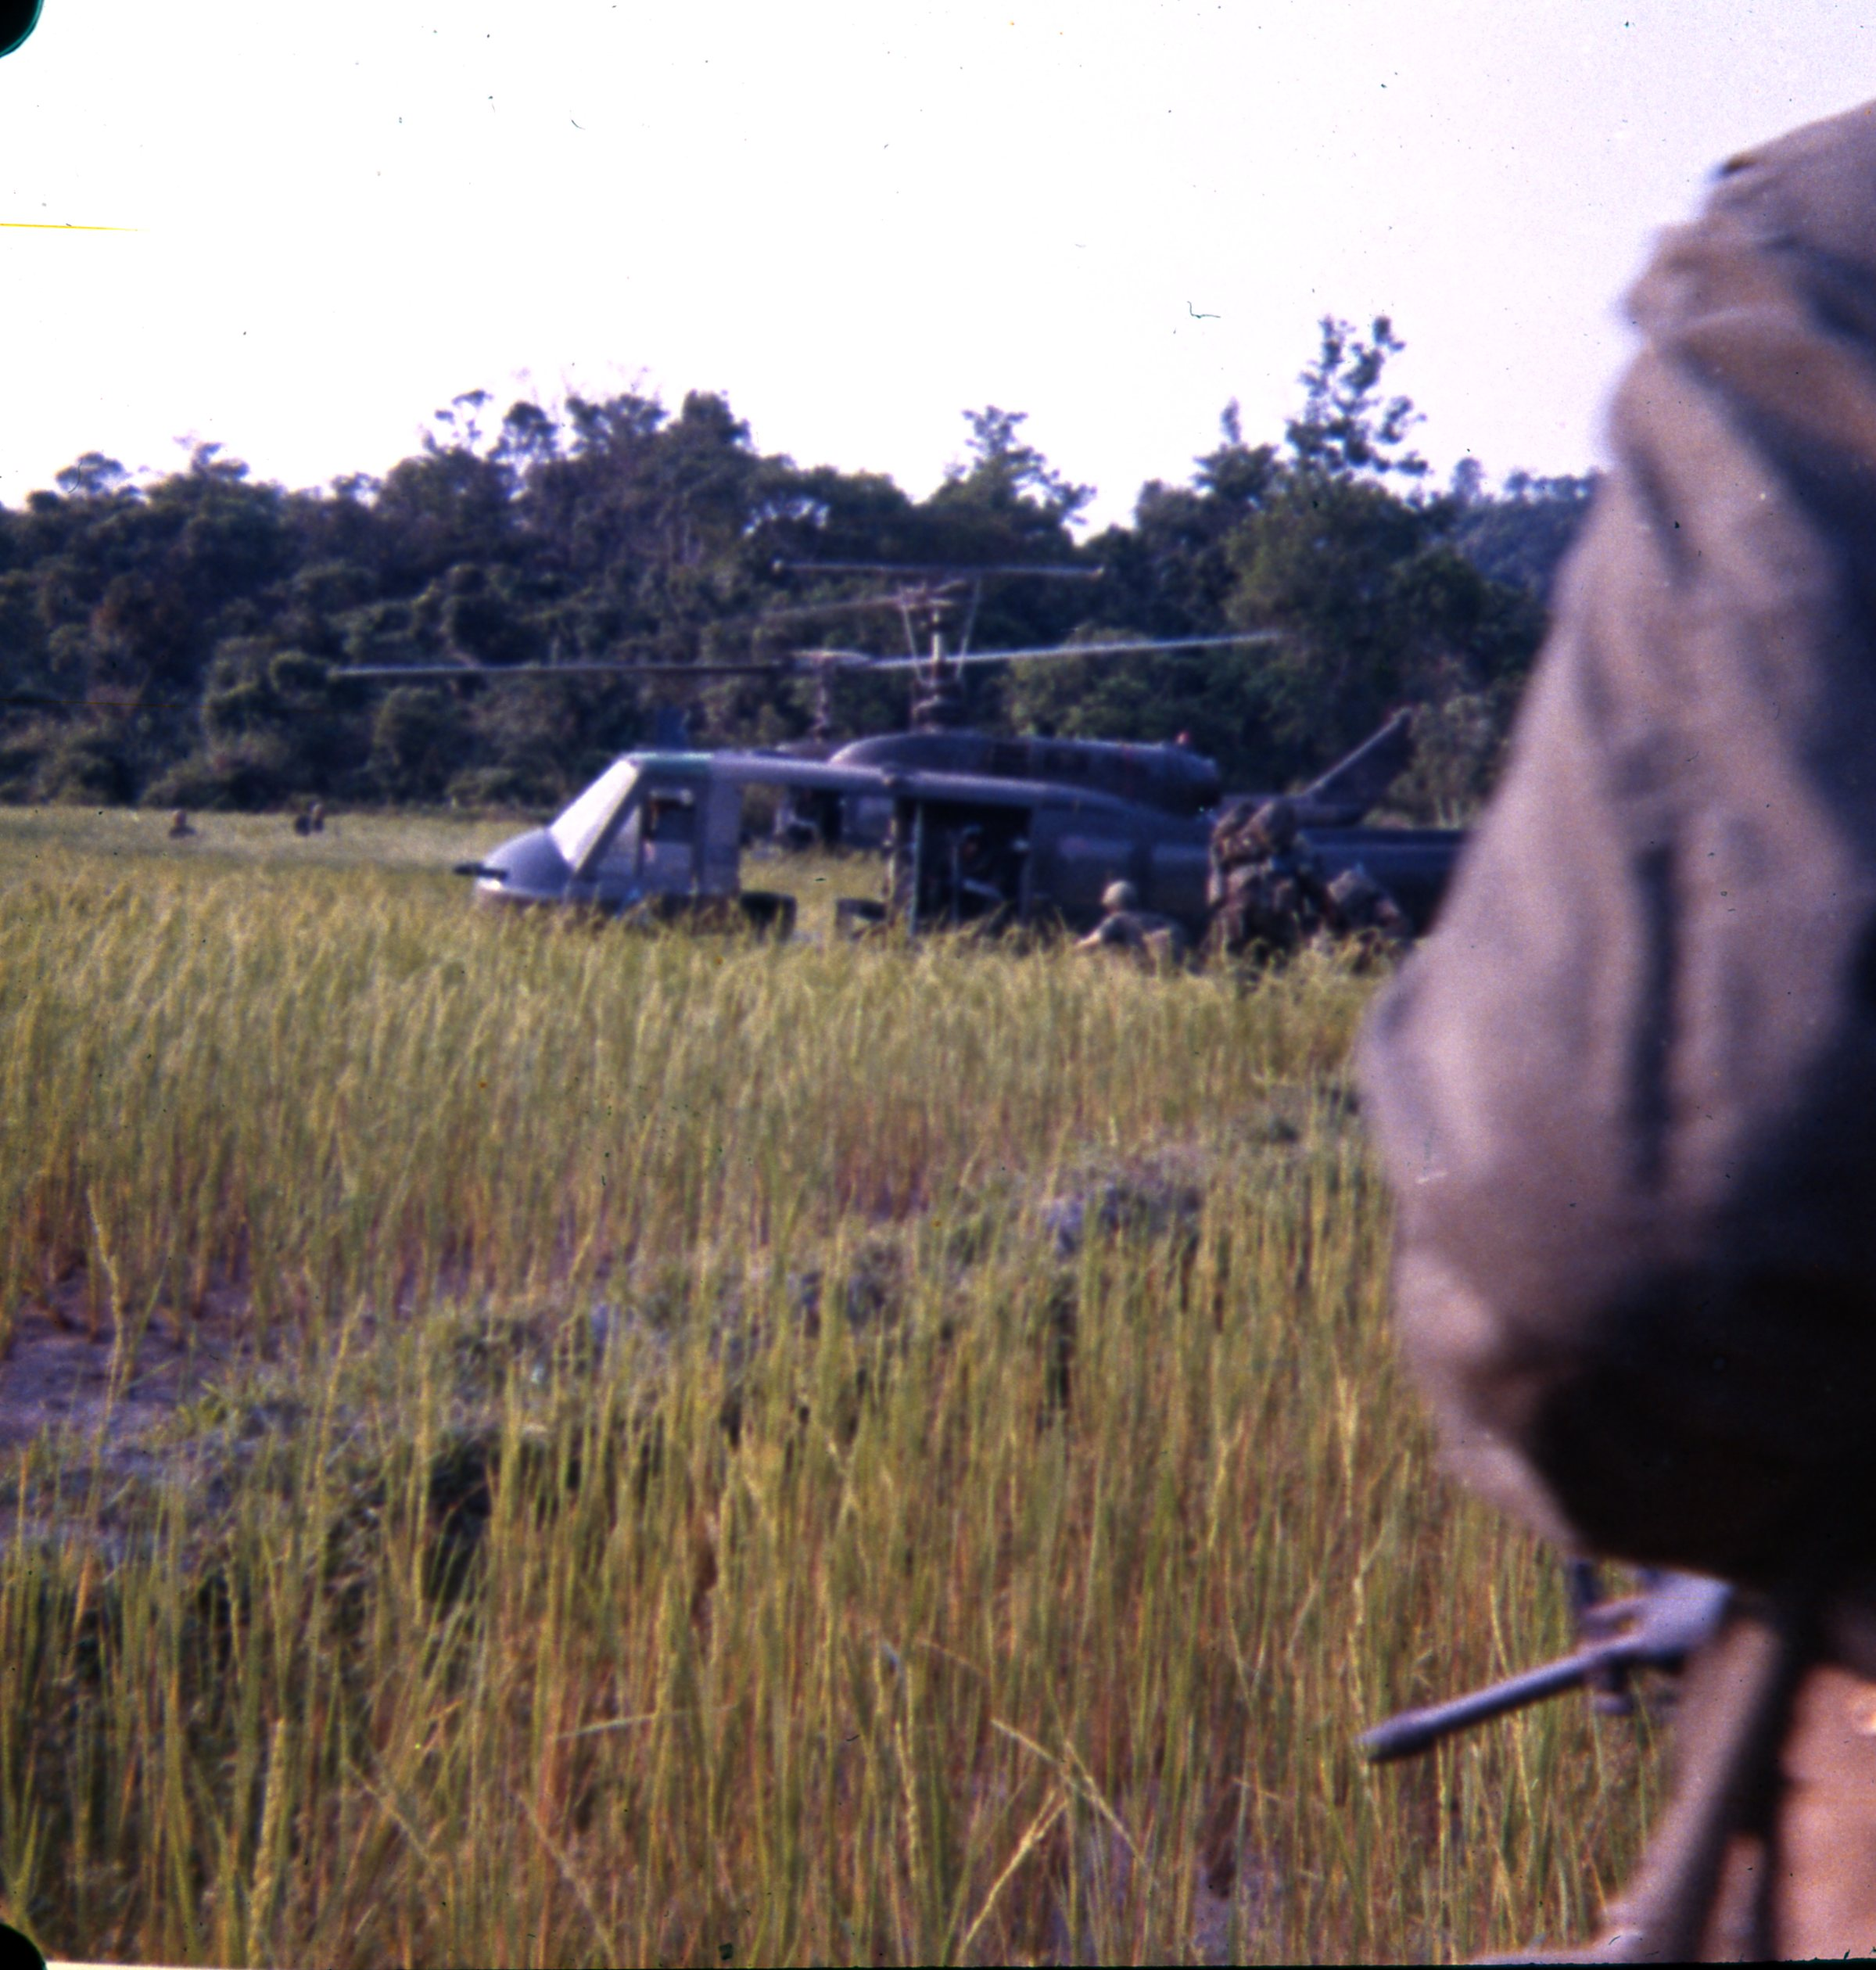 Alpha Company soldiers make their way toward choppers waiting in a rice paddy landing zone.